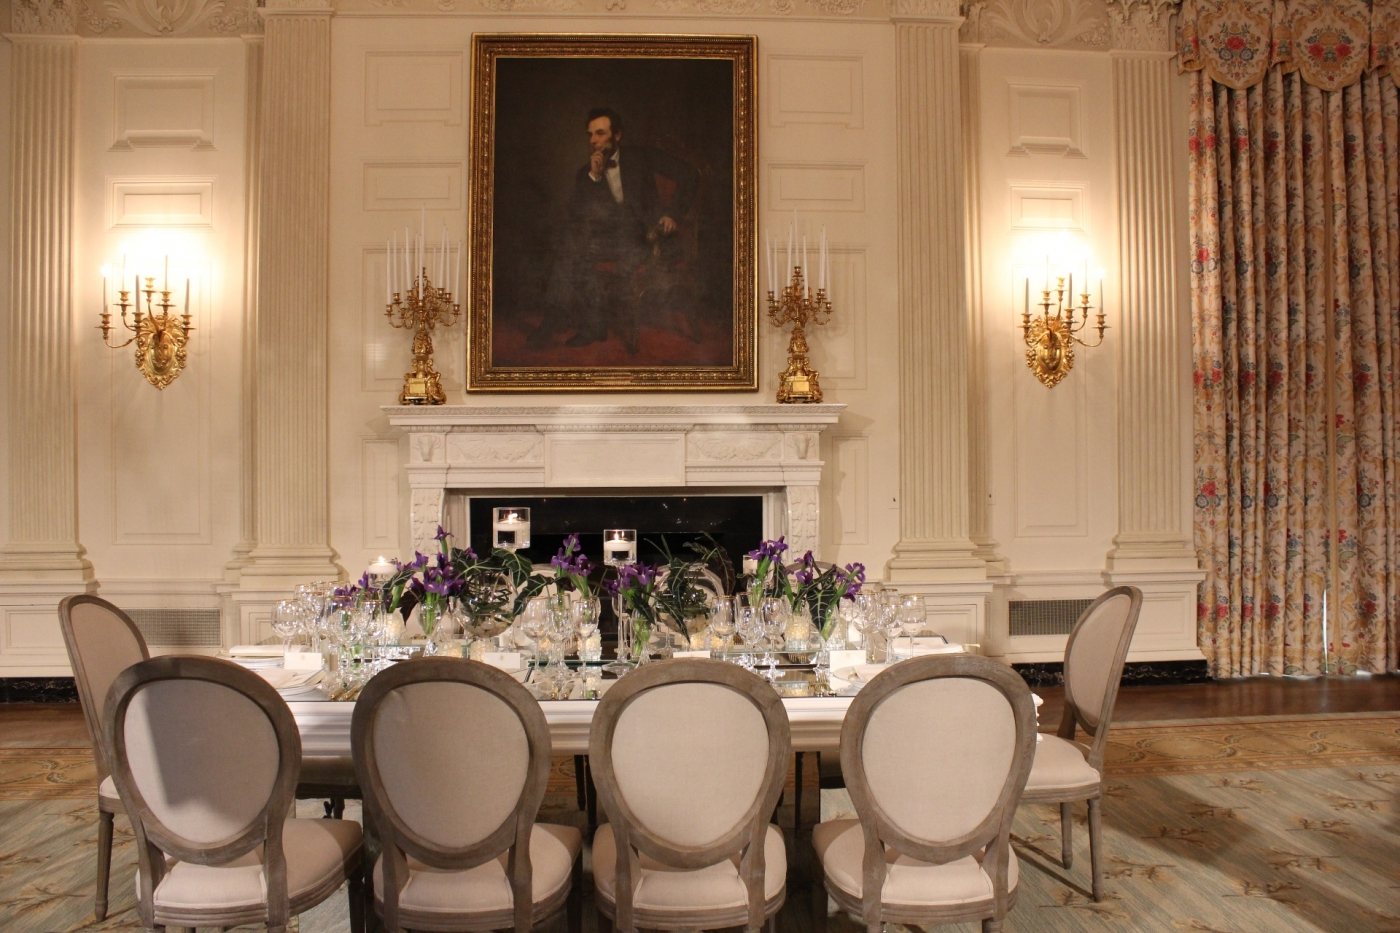 Delicacies From Across The Country Served At State Dinner